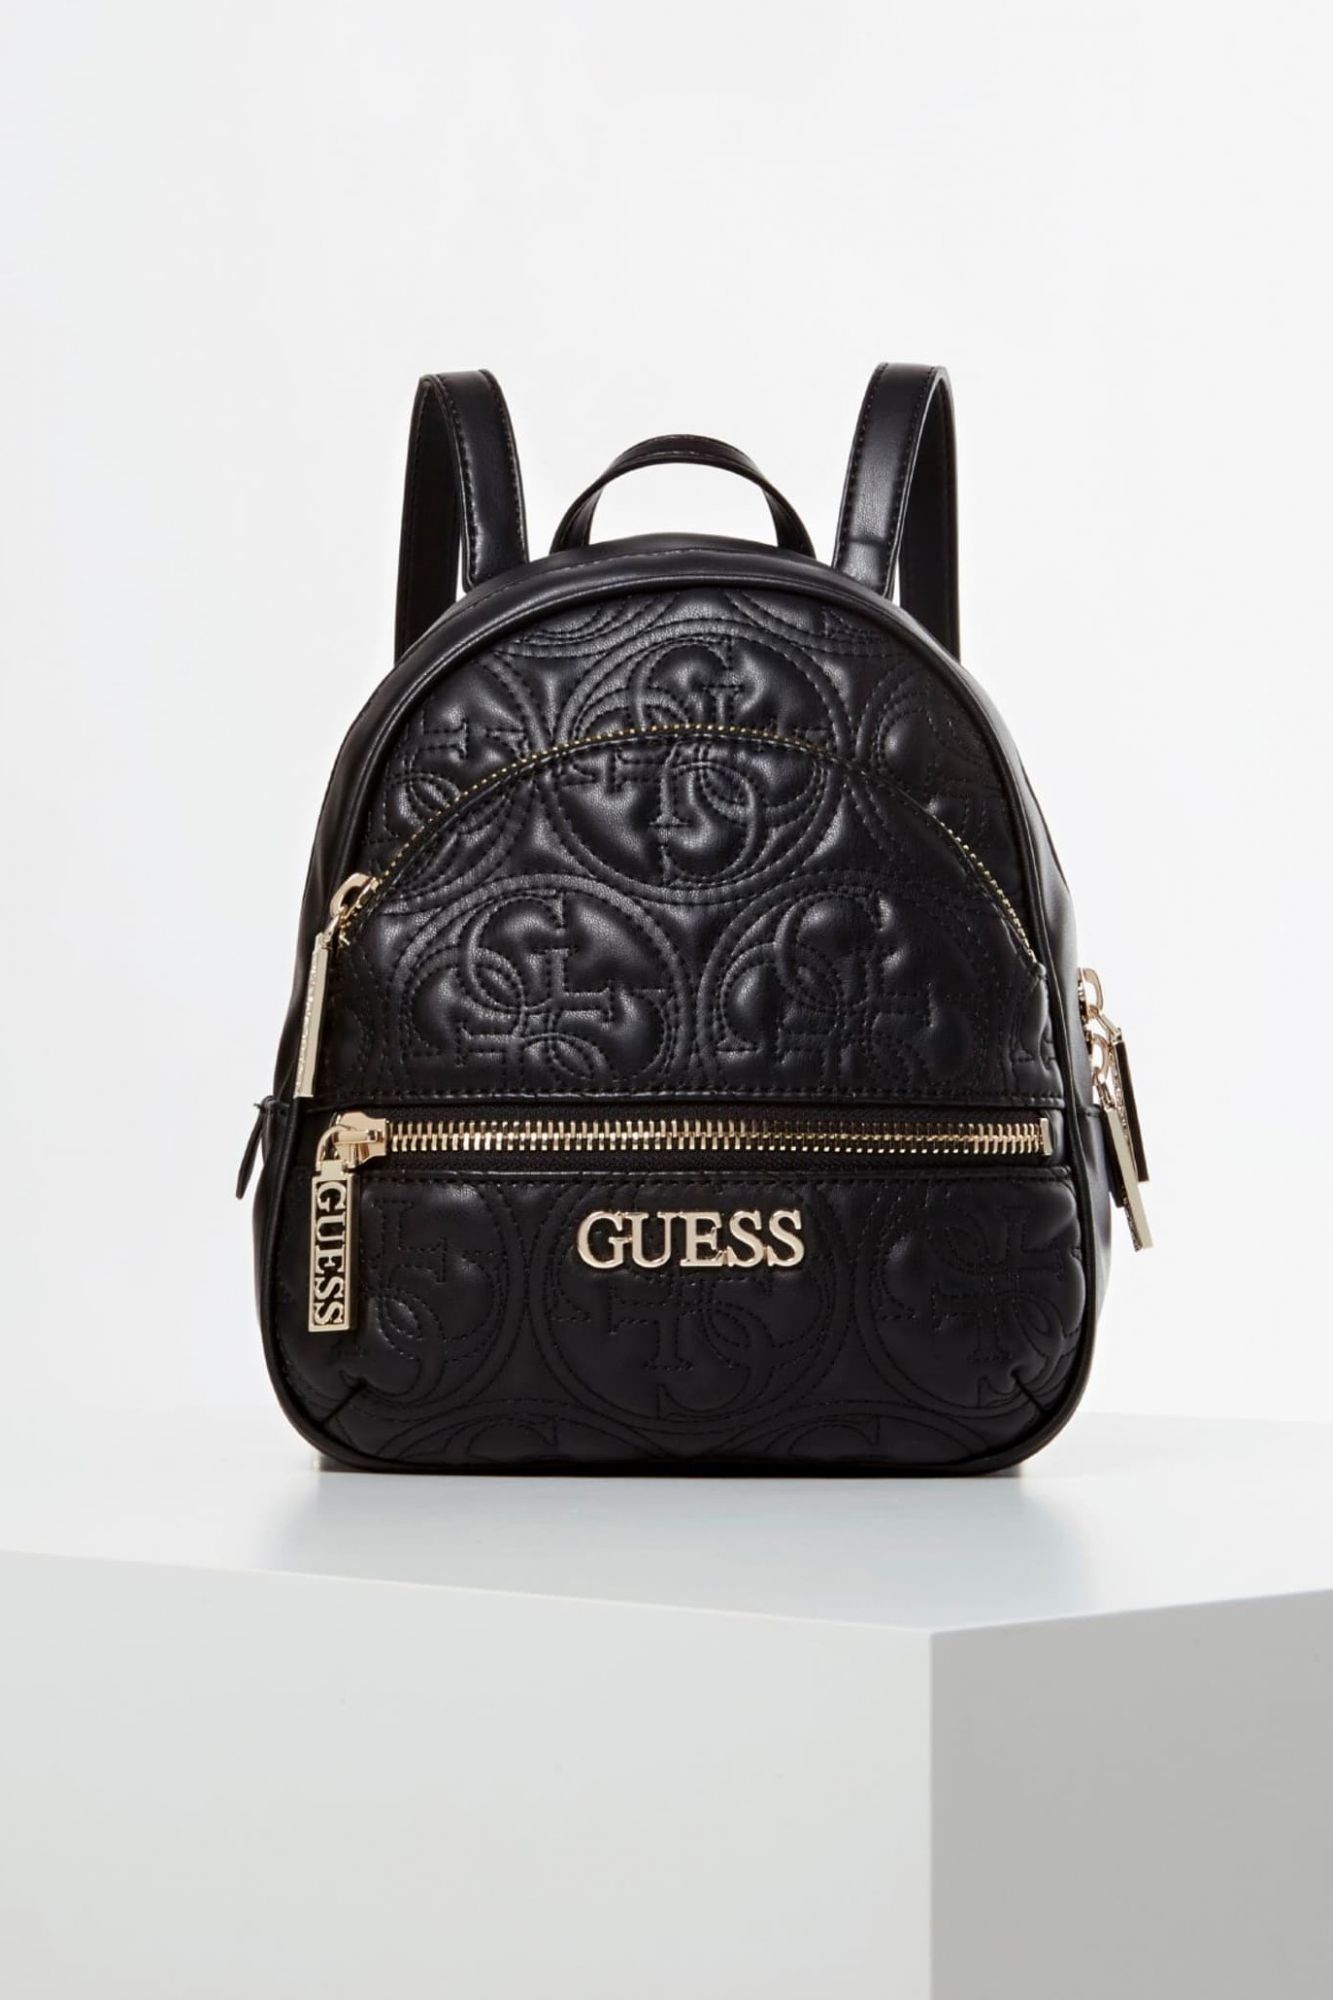 Guess čierny ruksak Manhattan Embroidered logo